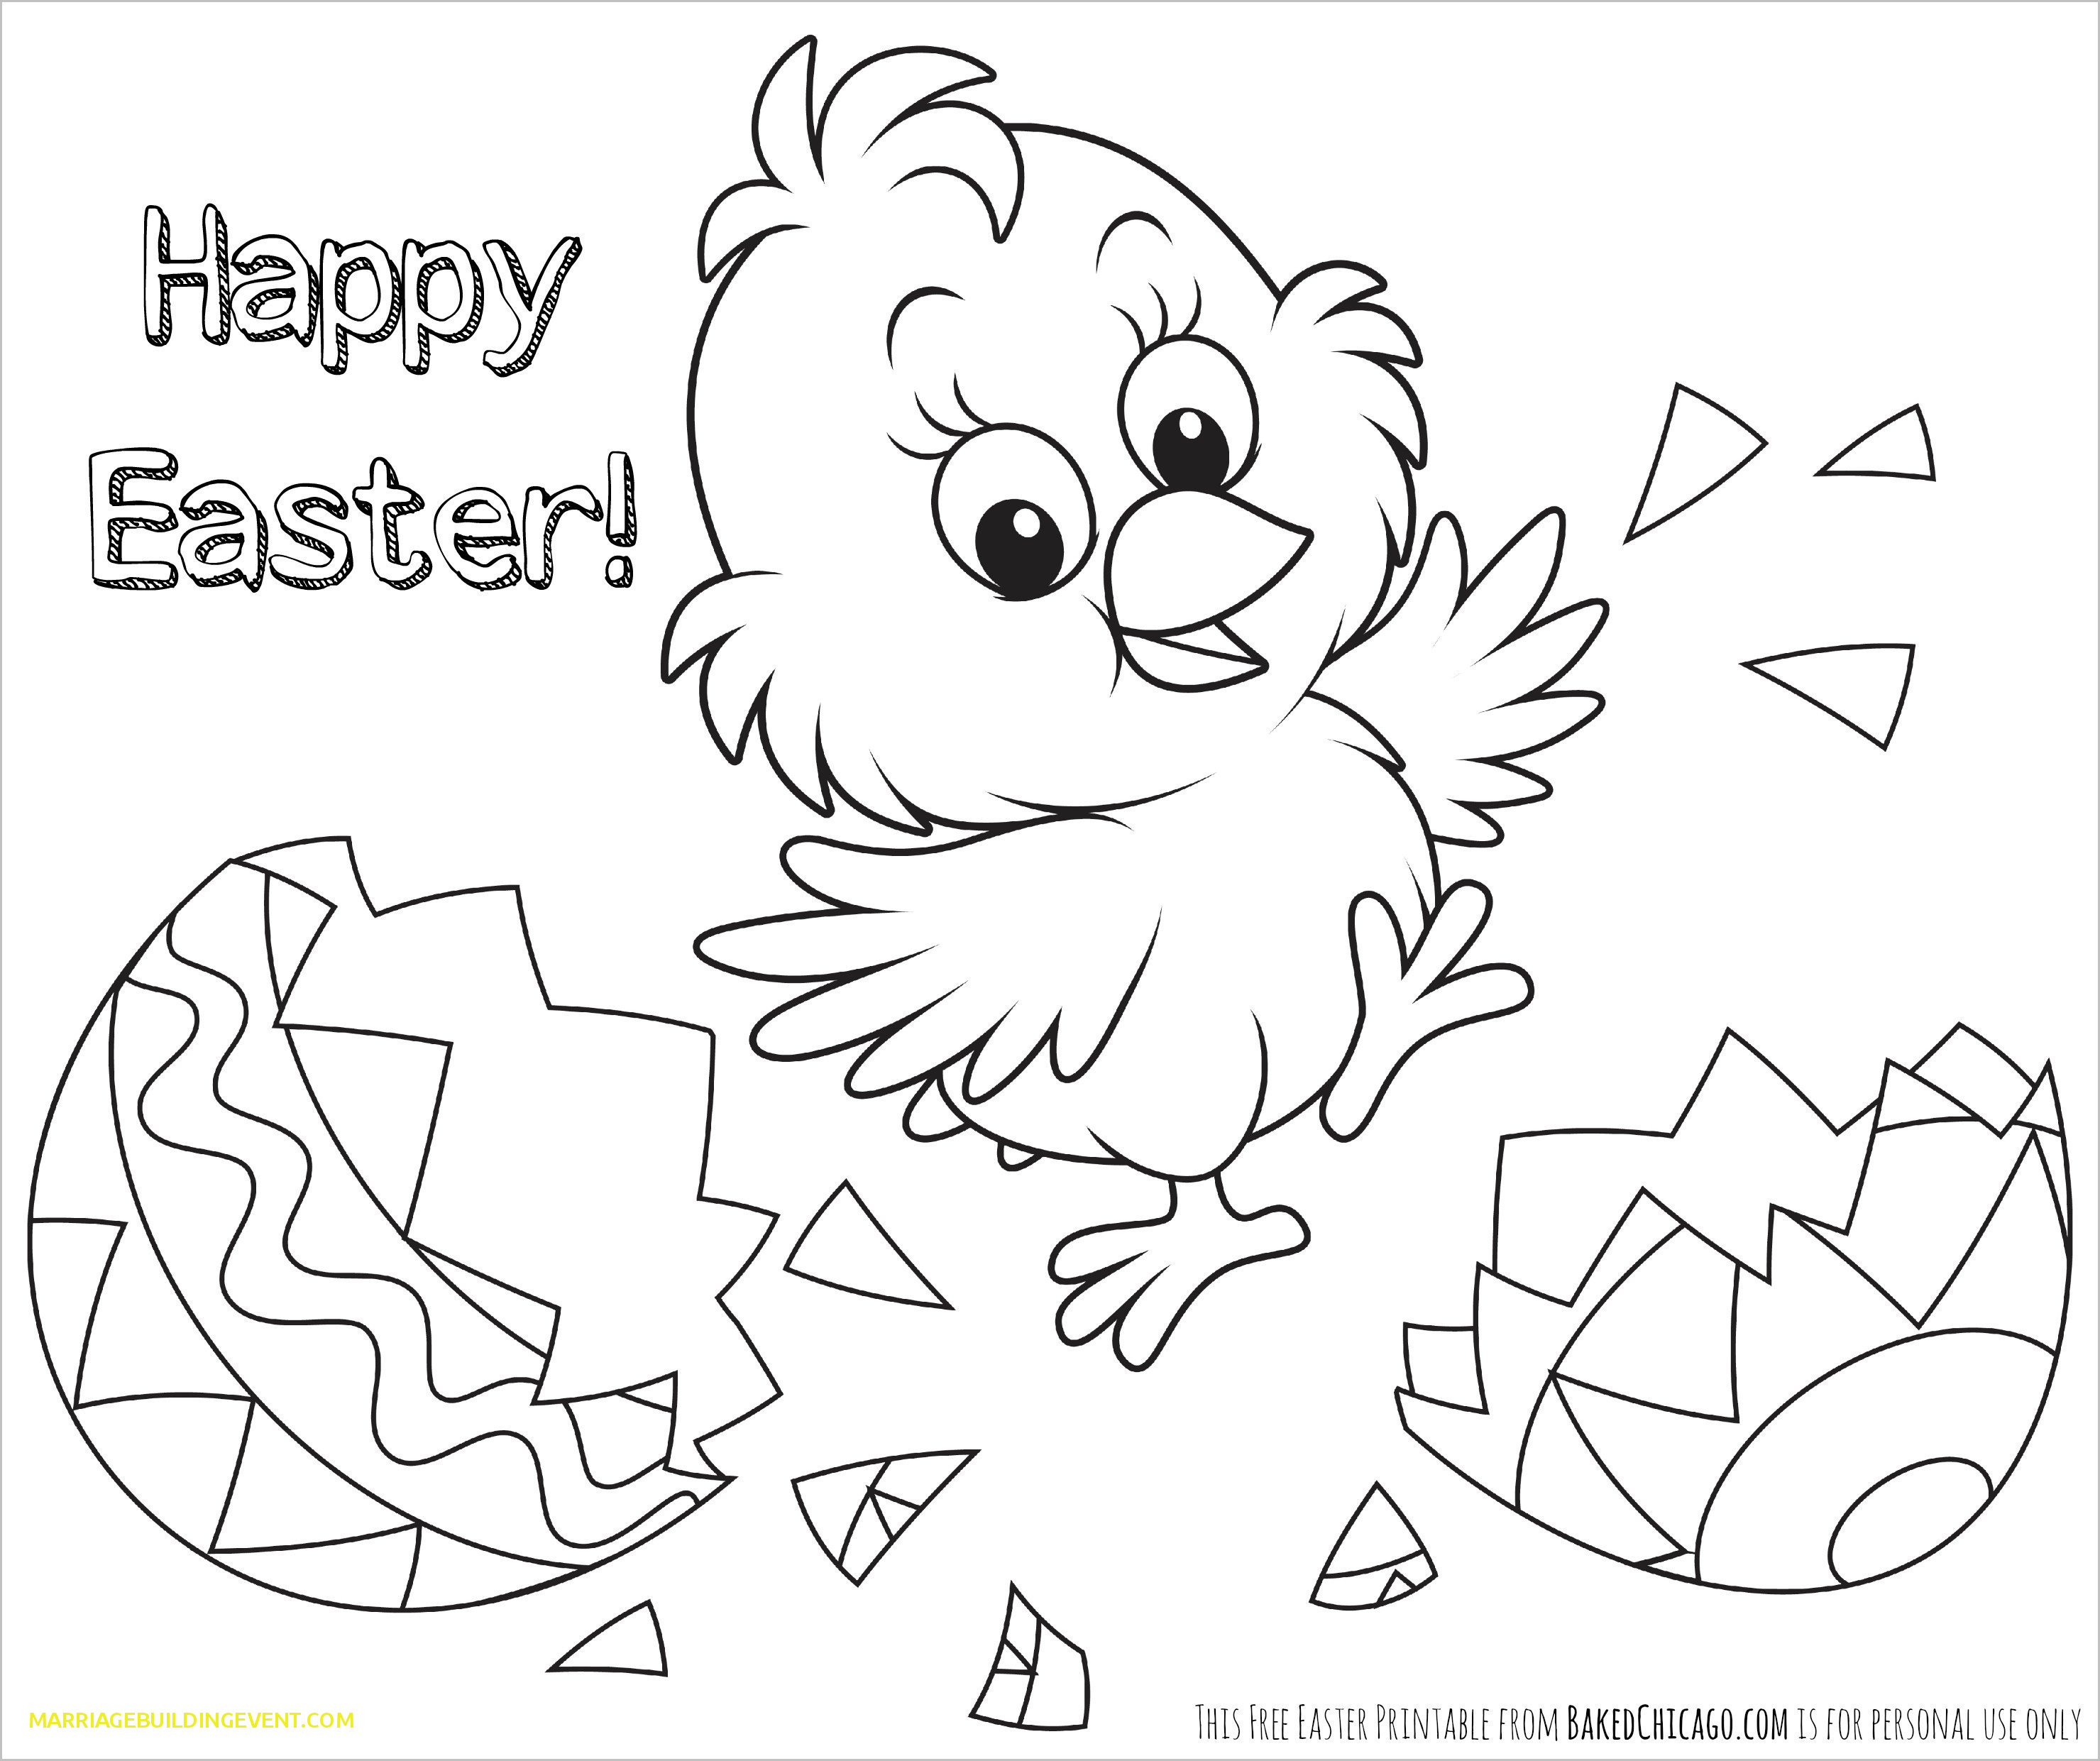 Beau Easter Coloring Pages For Kids To Print | Marriagebuildingevent - Free Printable Easter Coloring Pictures